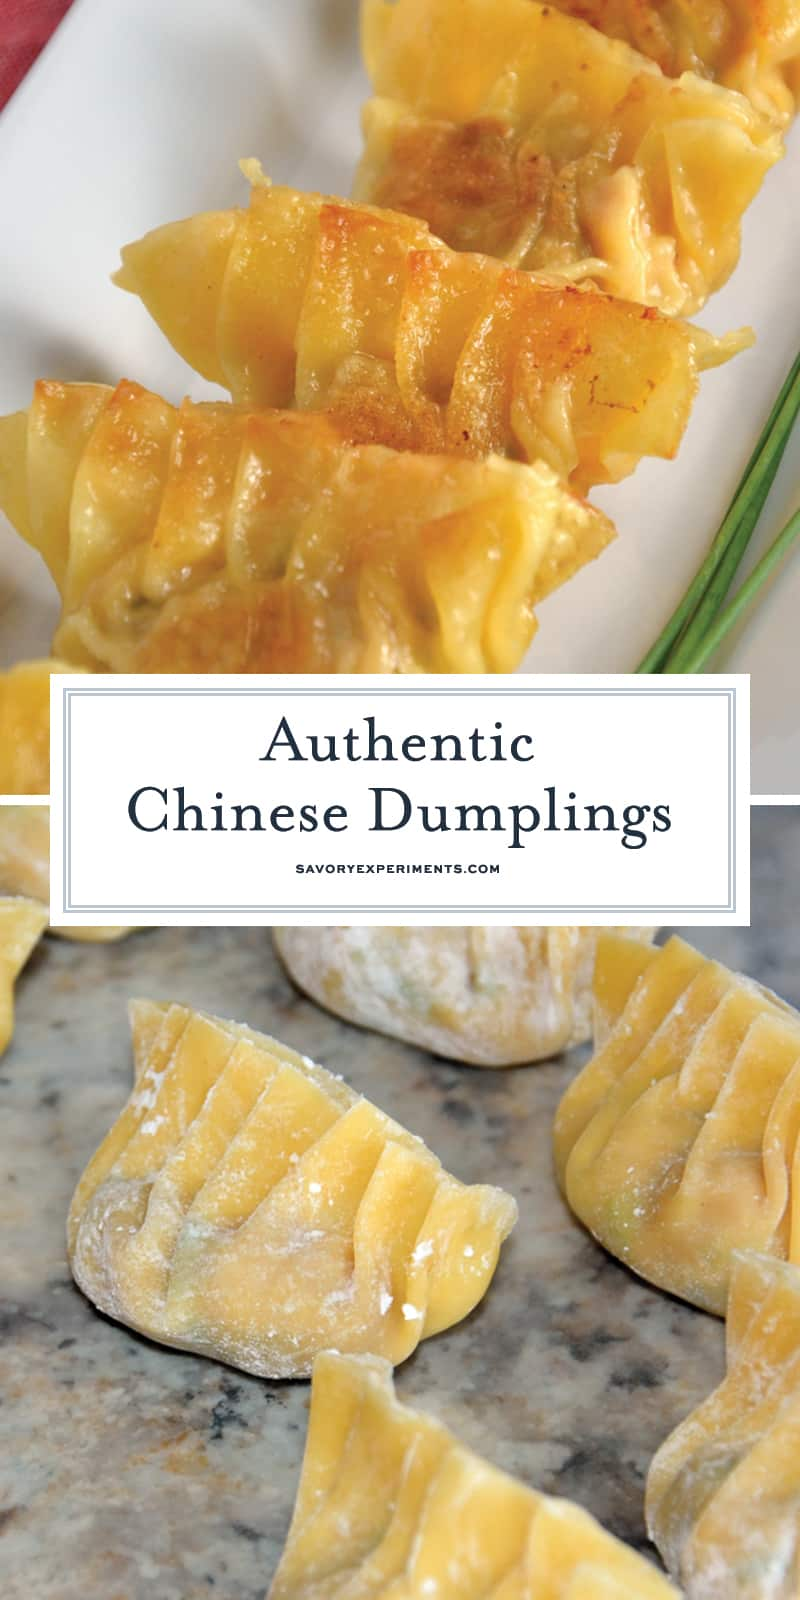 Authentic Chinese Dumplings is a recipe straight from a Chinese restaurant owner. Learn how to make perfect little folds and the fry and steam techinque of cooking. #chinesedumplings #porkdumplings www.savoryexperiments.com